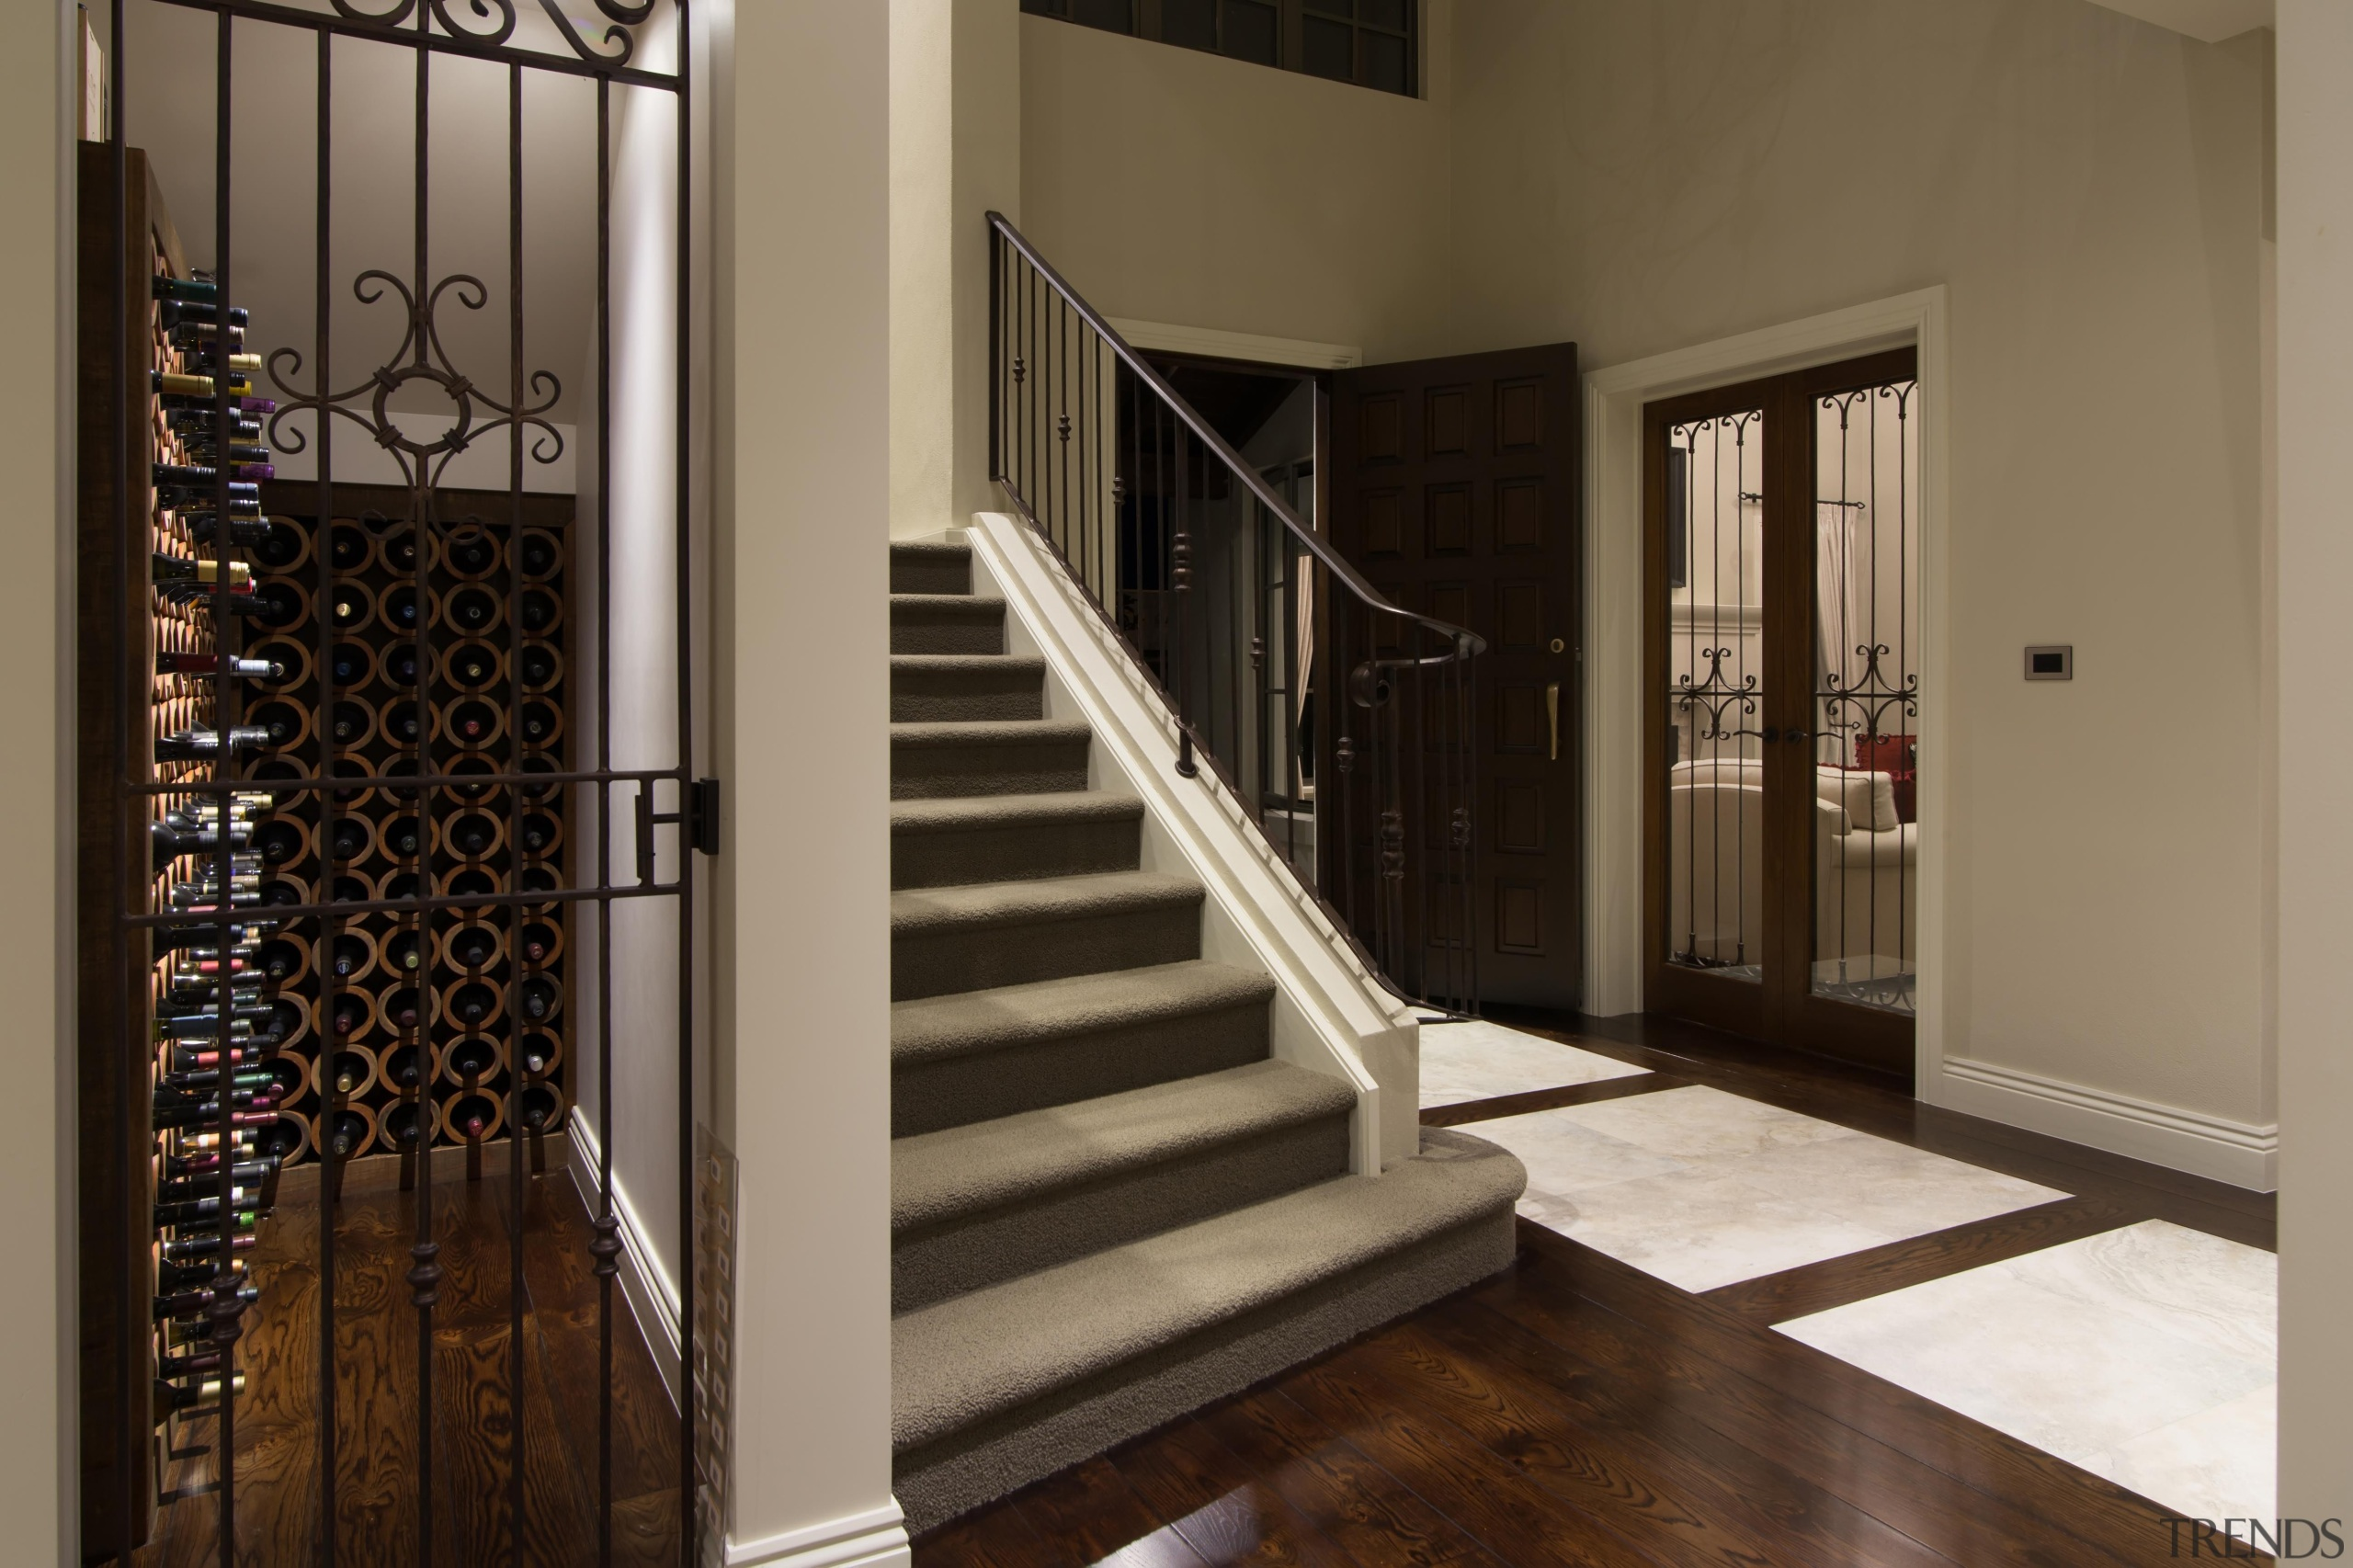 Img3520 - baluster | door | floor | baluster, door, floor, flooring, handrail, hardwood, home, interior design, iron, property, stairs, window, brown, black